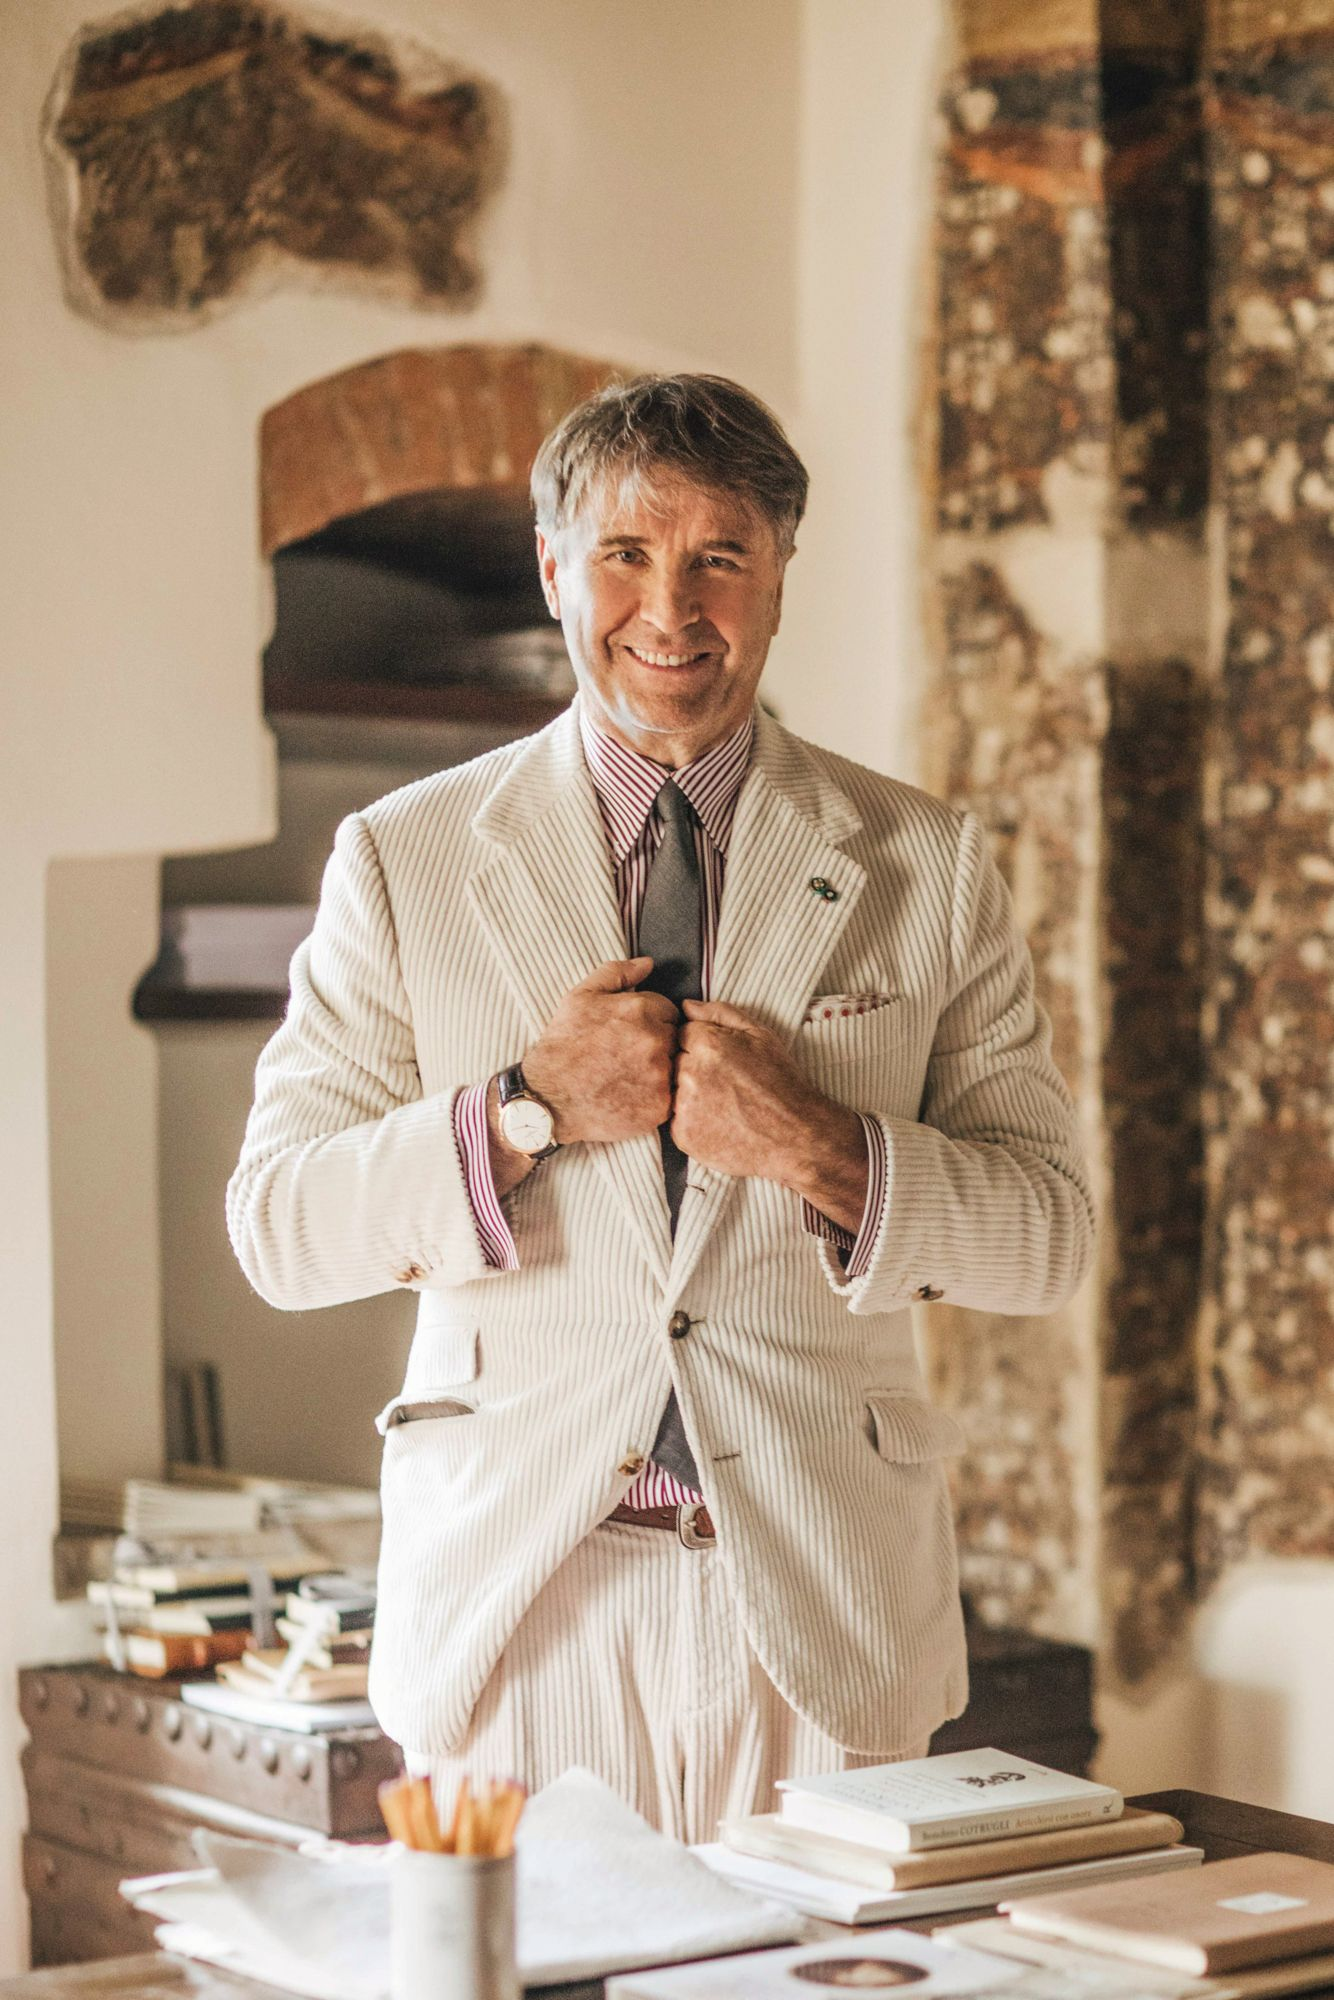 Brunello Cucinelli On His Father's Advice That Has Helped Through The Pandemic